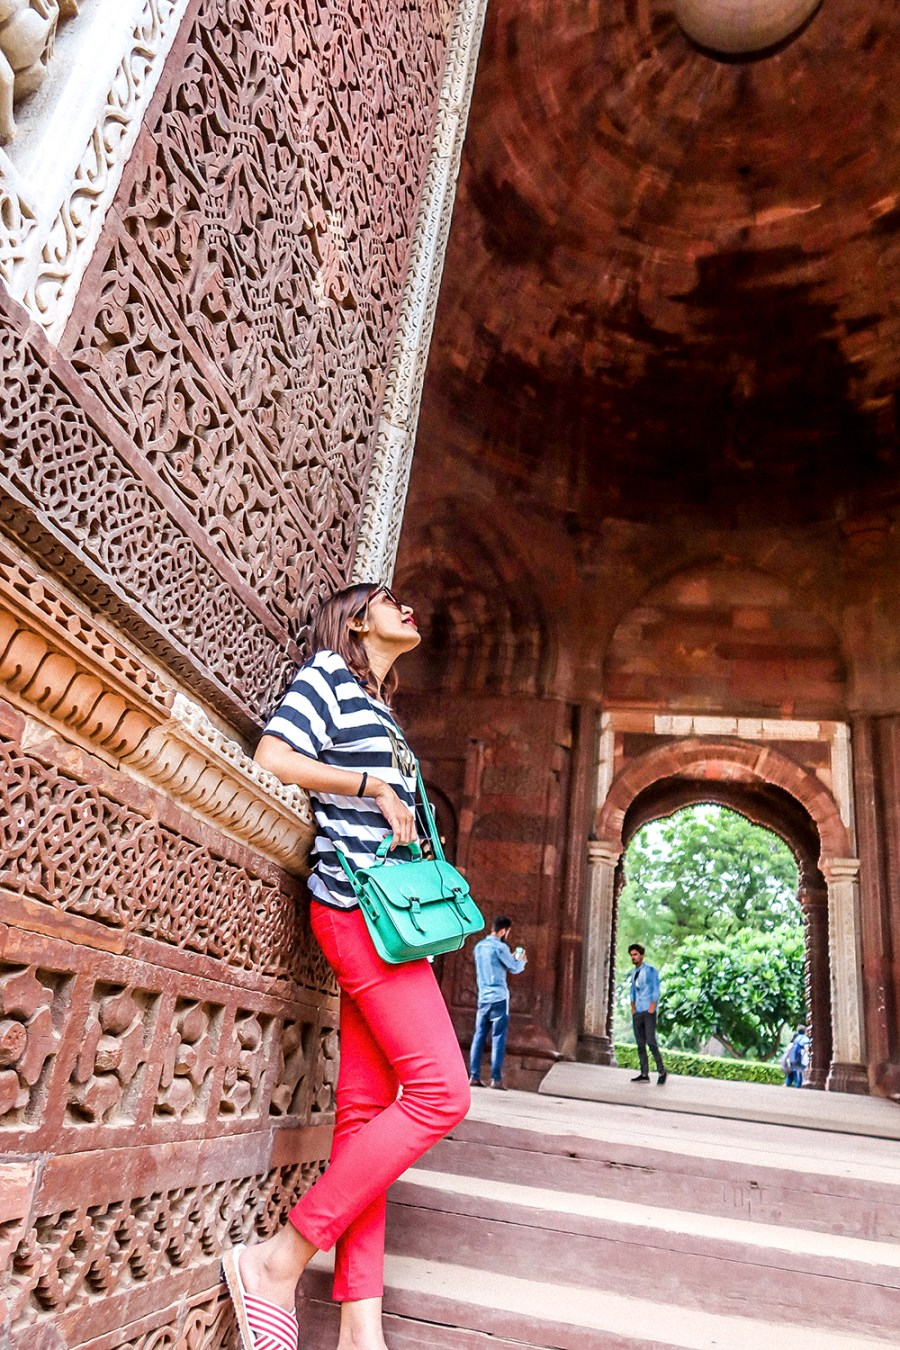 Qutub Minar, UNESCO World Heritage Site, Places to visit in Delhi, Indian Tourism, Travel, Travel Blogger, New Delhi, Delhi Travel, Style Over Coffee, Sarmistha Goswami, Indian Blogger